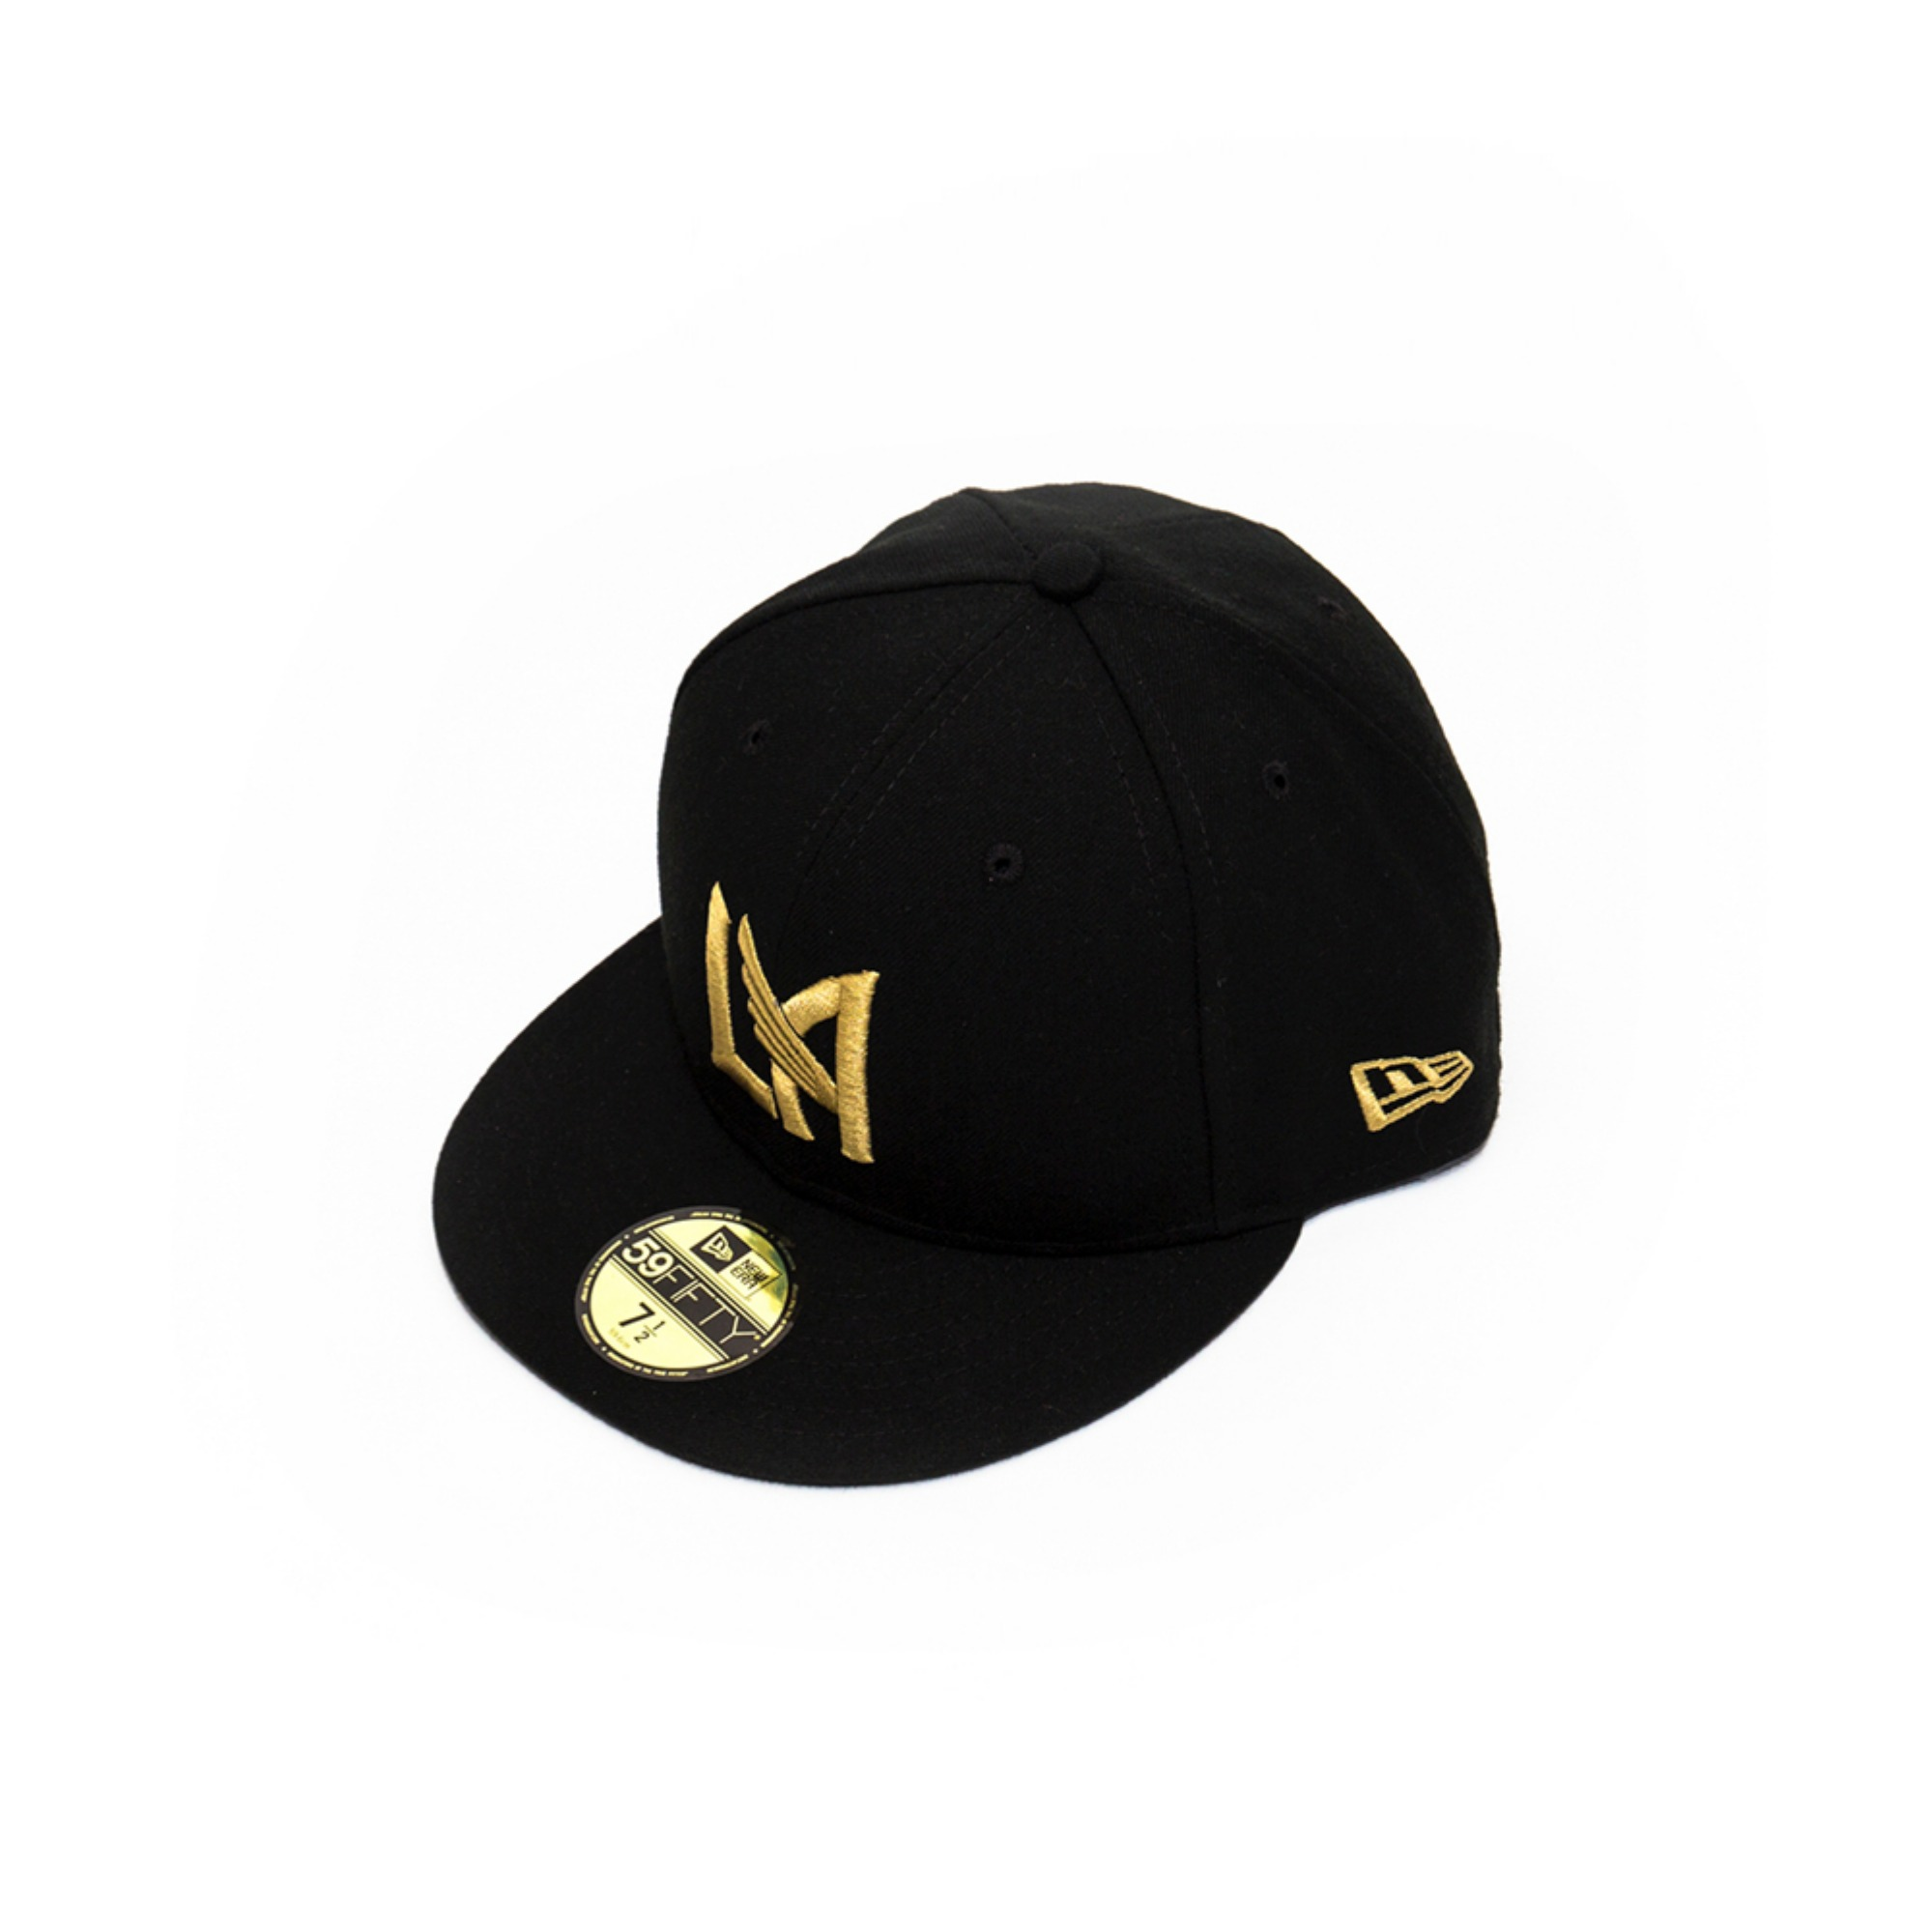 "LAFC 2018 ""ICON"" New Era cap"